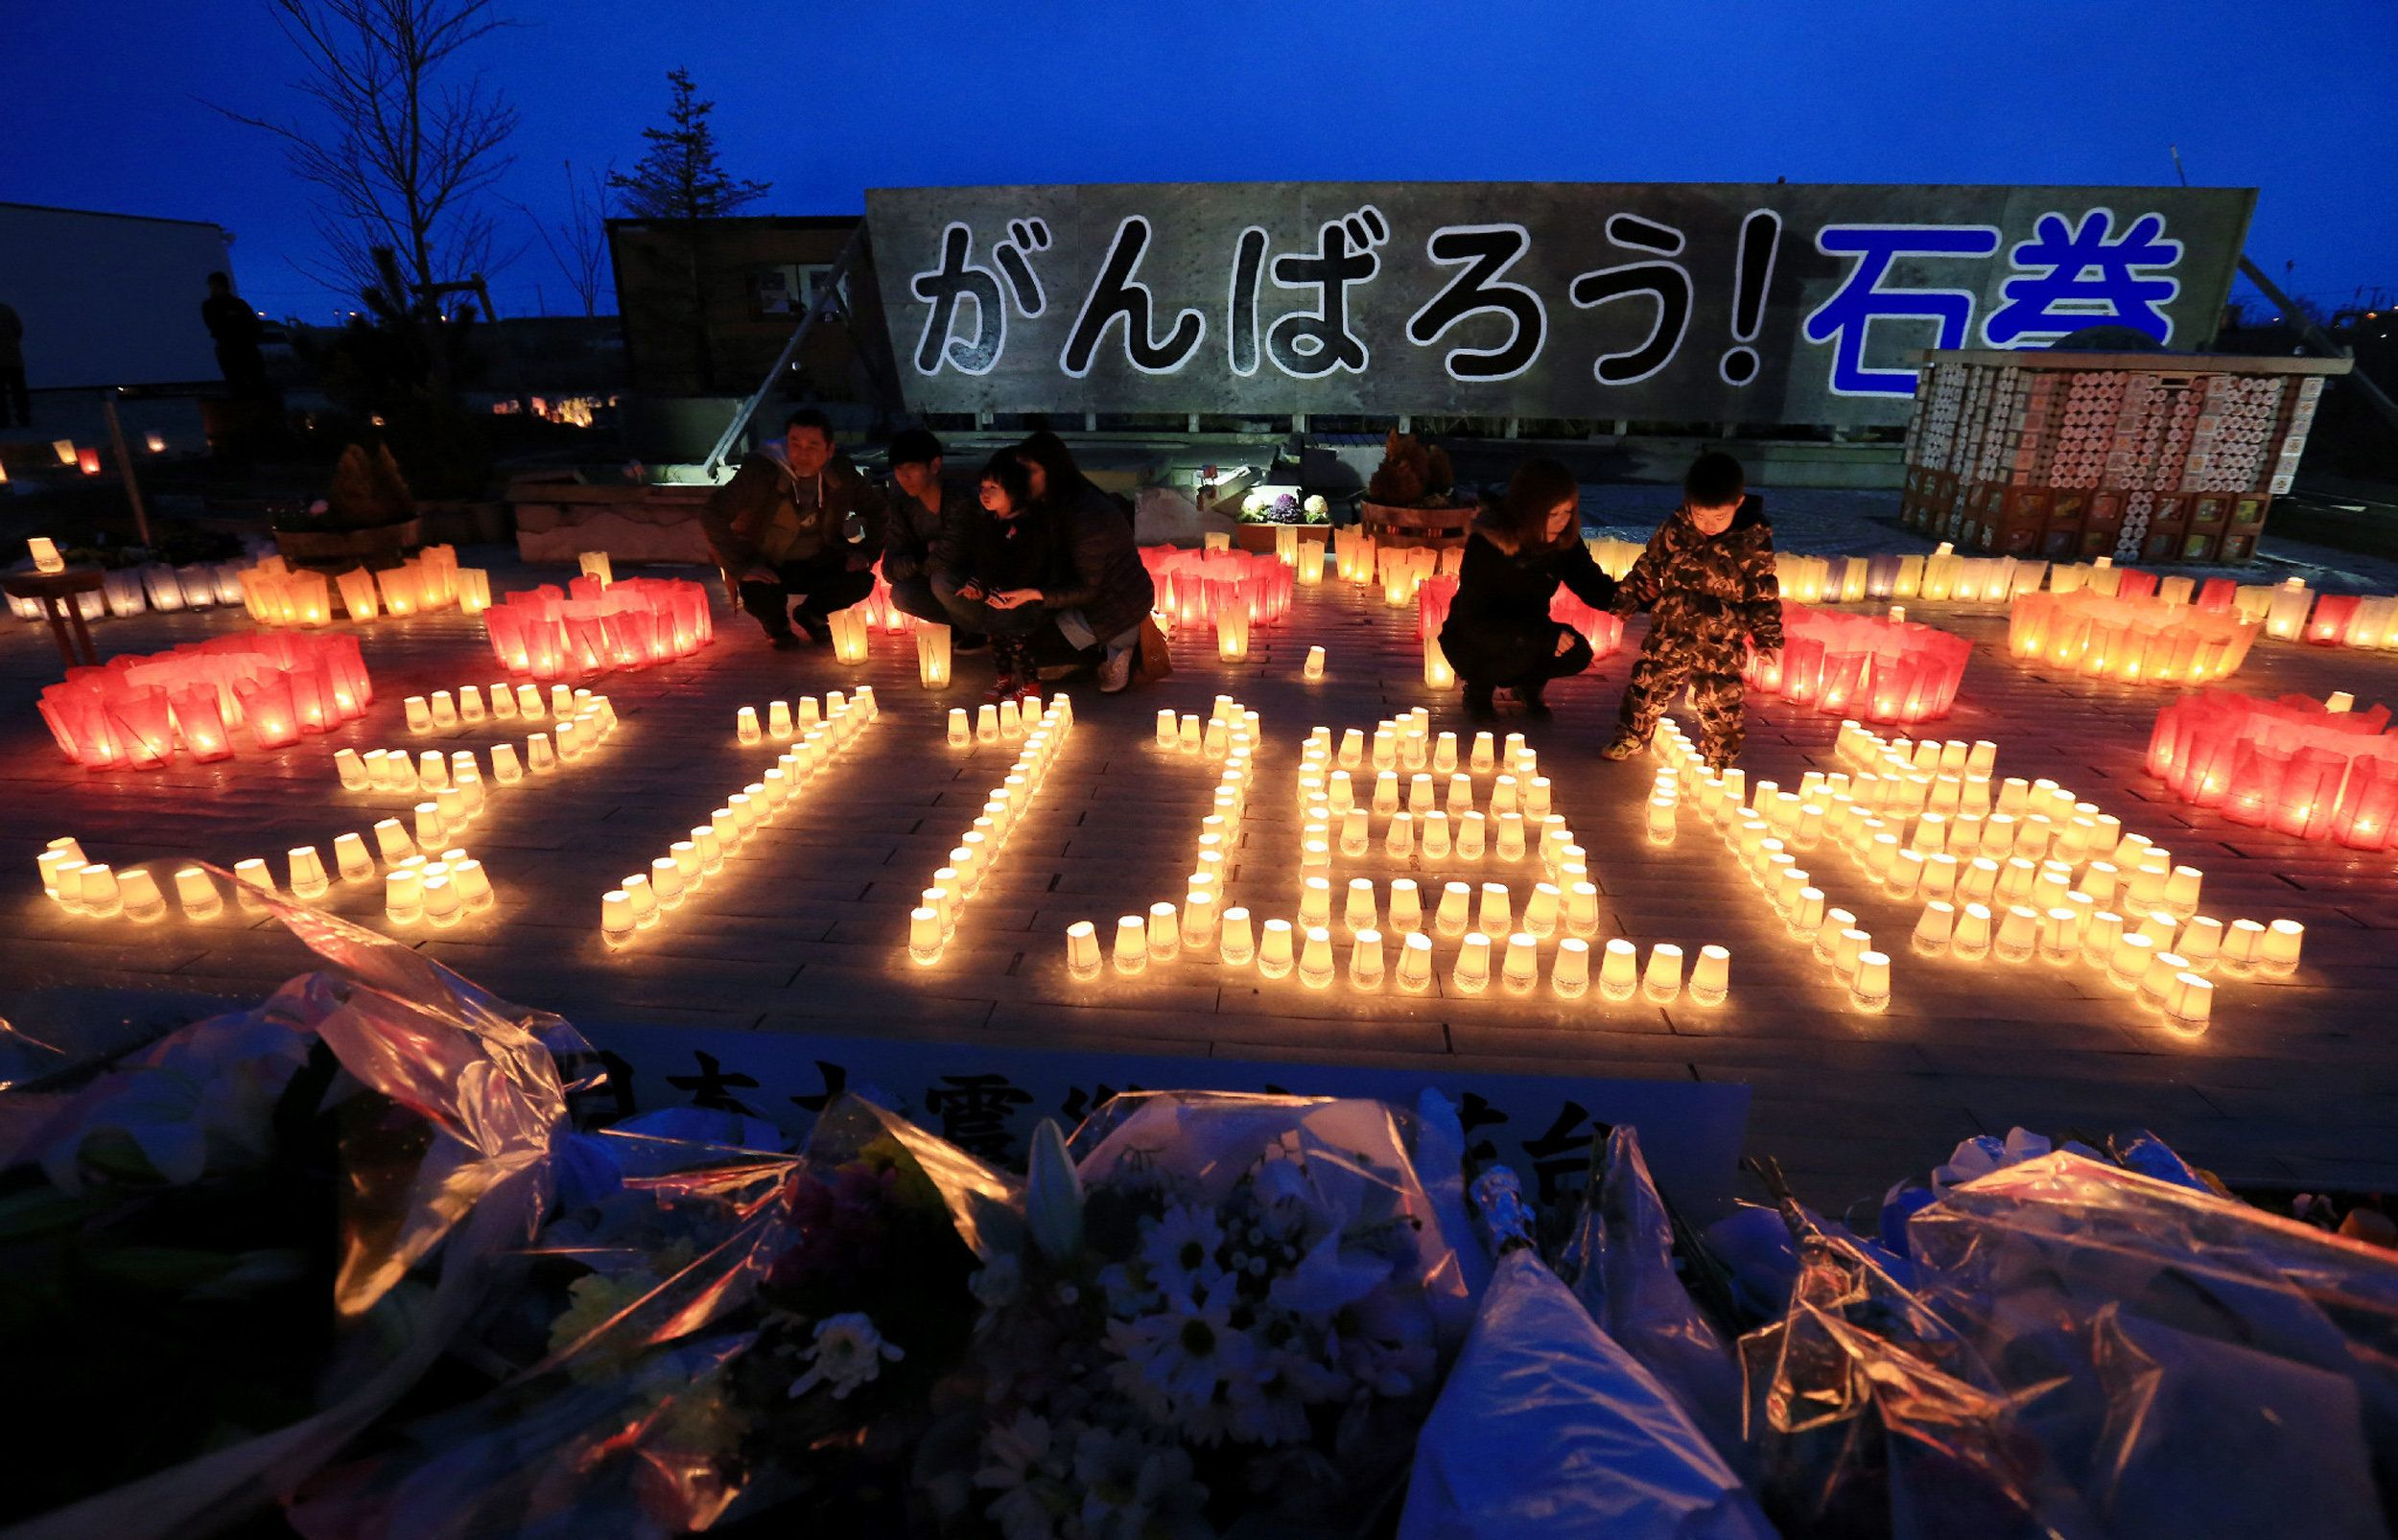 """Candles spell out """"3.11 memorial"""" in Japanese in Ishinomaki, a city in the Tohoku region."""